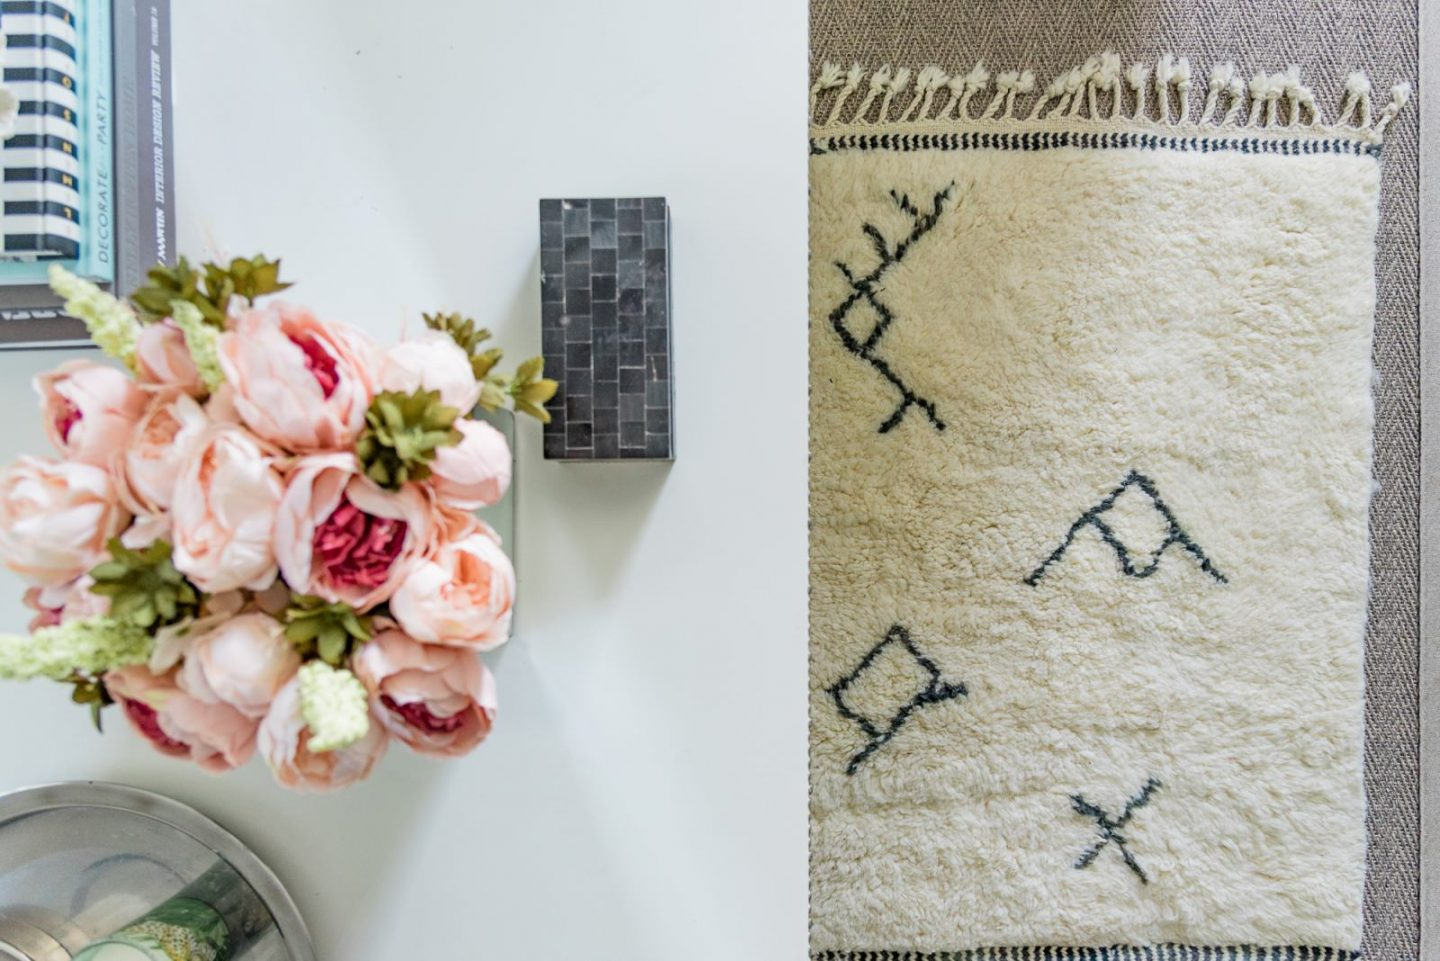 5 TOP TIPS FOR LAYERING AND CHOOSING RUGS